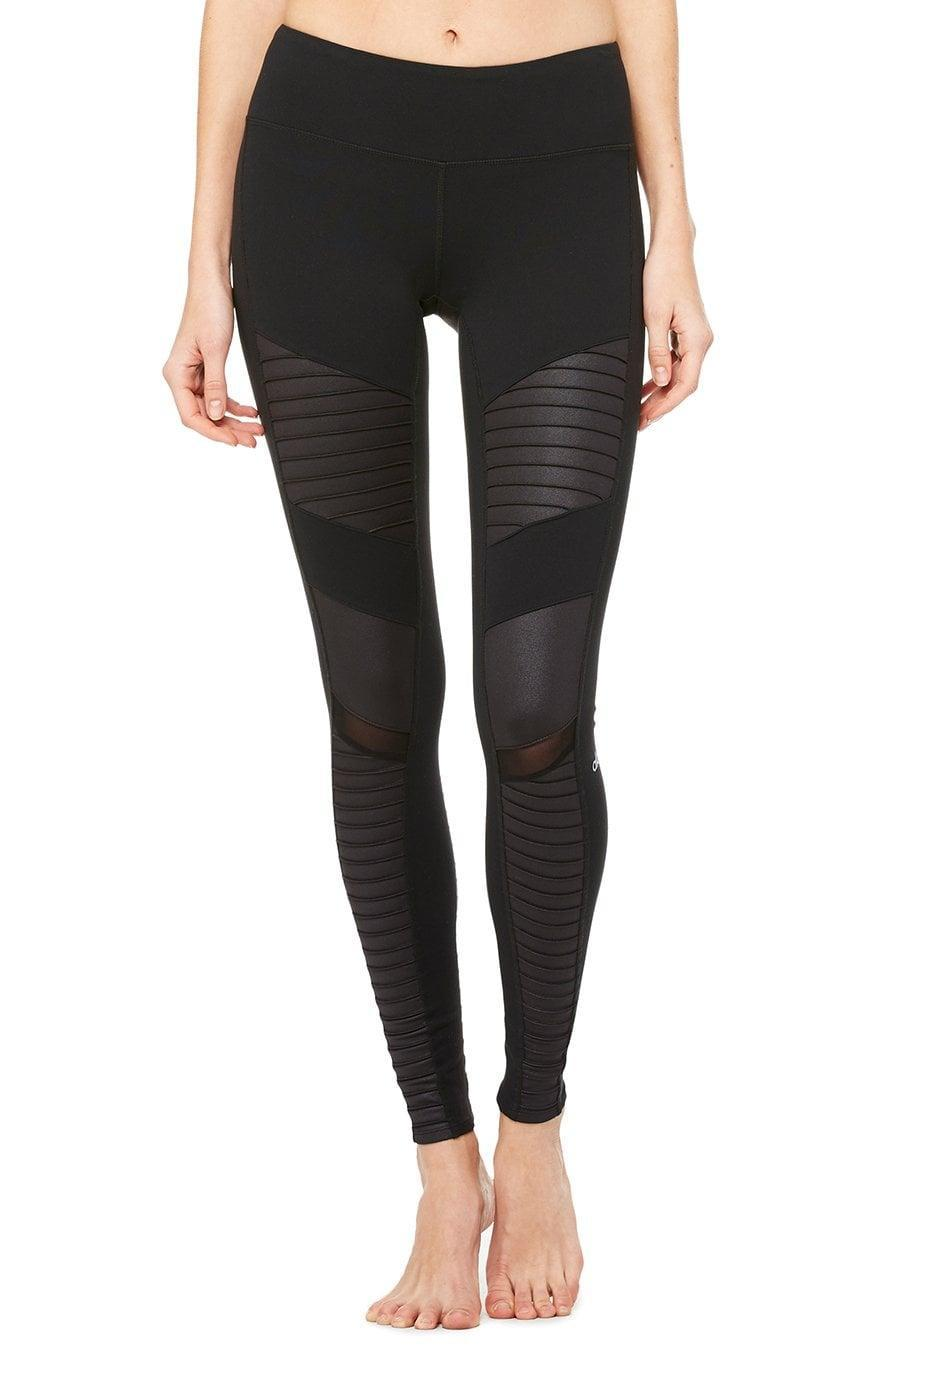 "<p><a href=""https://www.popsugar.com/buy/Alo-Moto-Leggings-586663?p_name=Alo%20Moto%20Leggings&retailer=aloyoga.com&pid=586663&price=66&evar1=fit%3Aus&evar9=47592411&evar98=https%3A%2F%2Fwww.popsugar.com%2Fphoto-gallery%2F47592411%2Fimage%2F47592448%2FAlo-Moto-Leggings&list1=shopping%2Cworkout%20clothes%2Csale%2Cfourth%20of%20july%2Csale%20shopping&prop13=api&pdata=1"" class=""link rapid-noclick-resp"" rel=""nofollow noopener"" target=""_blank"" data-ylk=""slk:Alo Moto Leggings"">Alo Moto Leggings</a> ($66, originally $110)</p>"